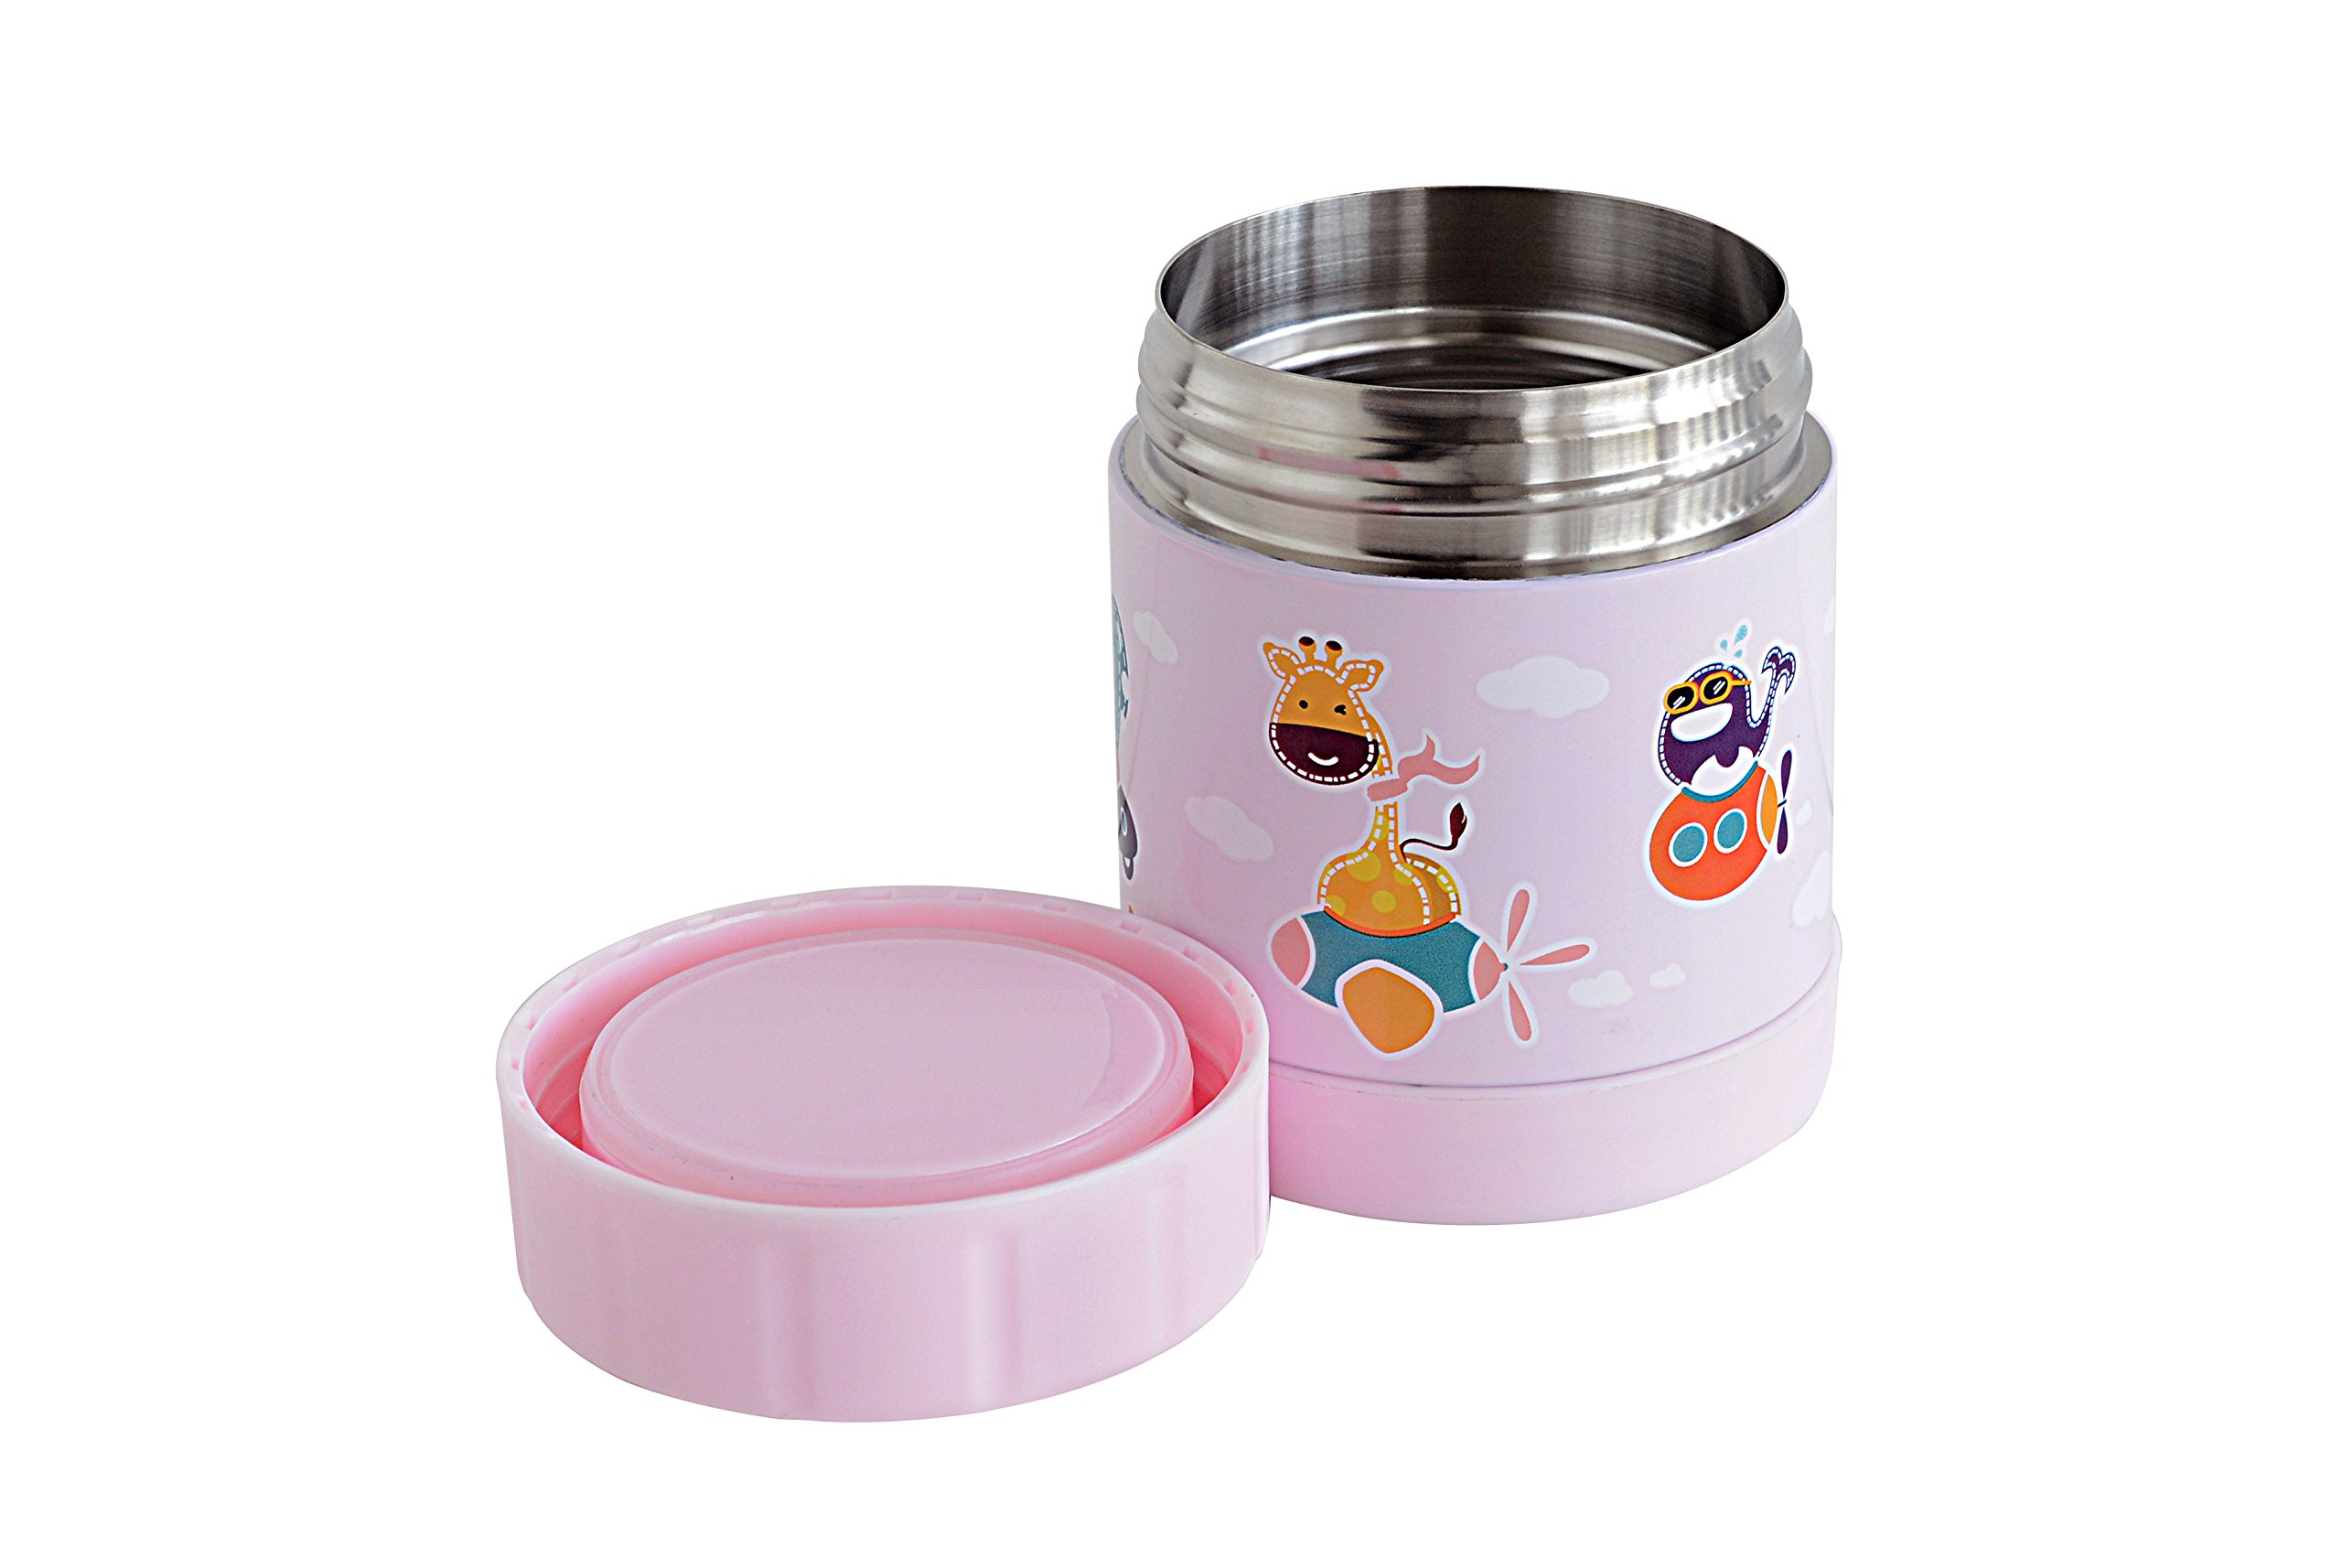 Marcus & Marcus Animal Themed Kids Stainless Steel Thermal Container - Pink